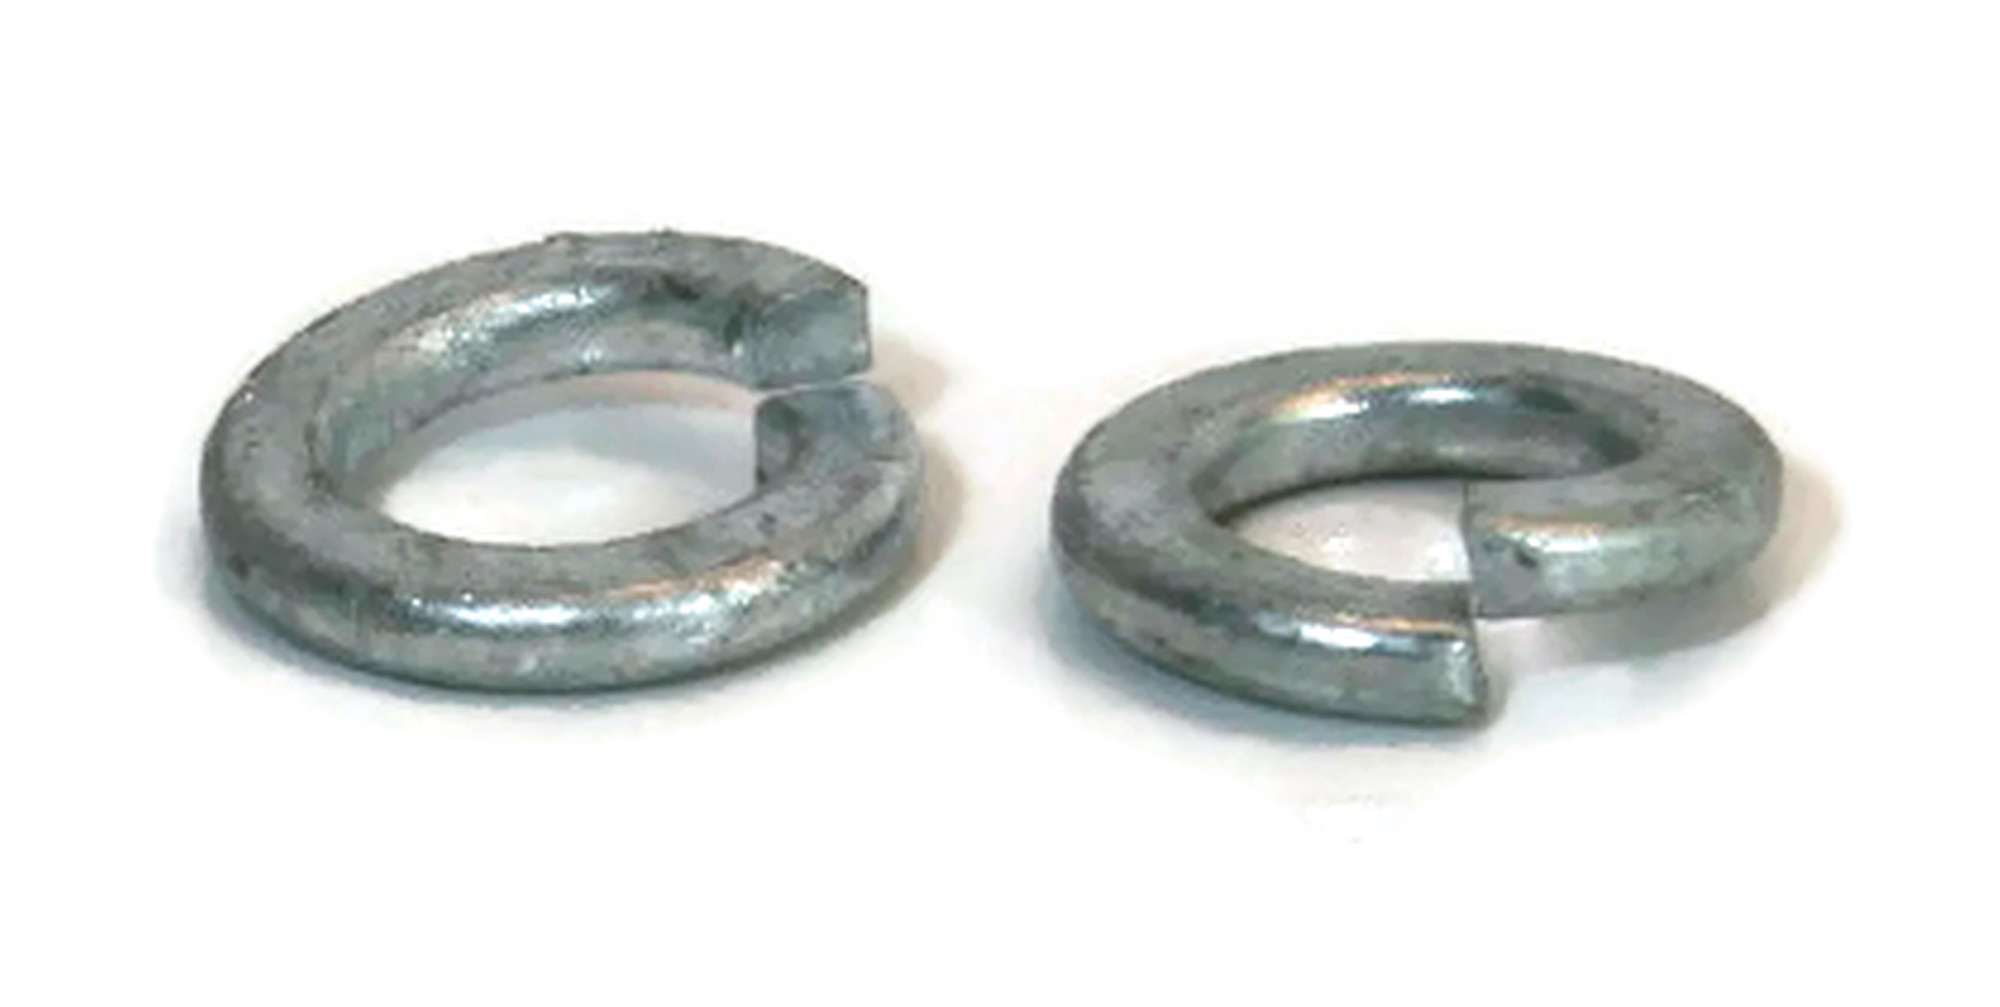 1//4 OD 0.487 ID 0.260 Split Ring Lock Washer Hot Dip Galvanized Qty-250